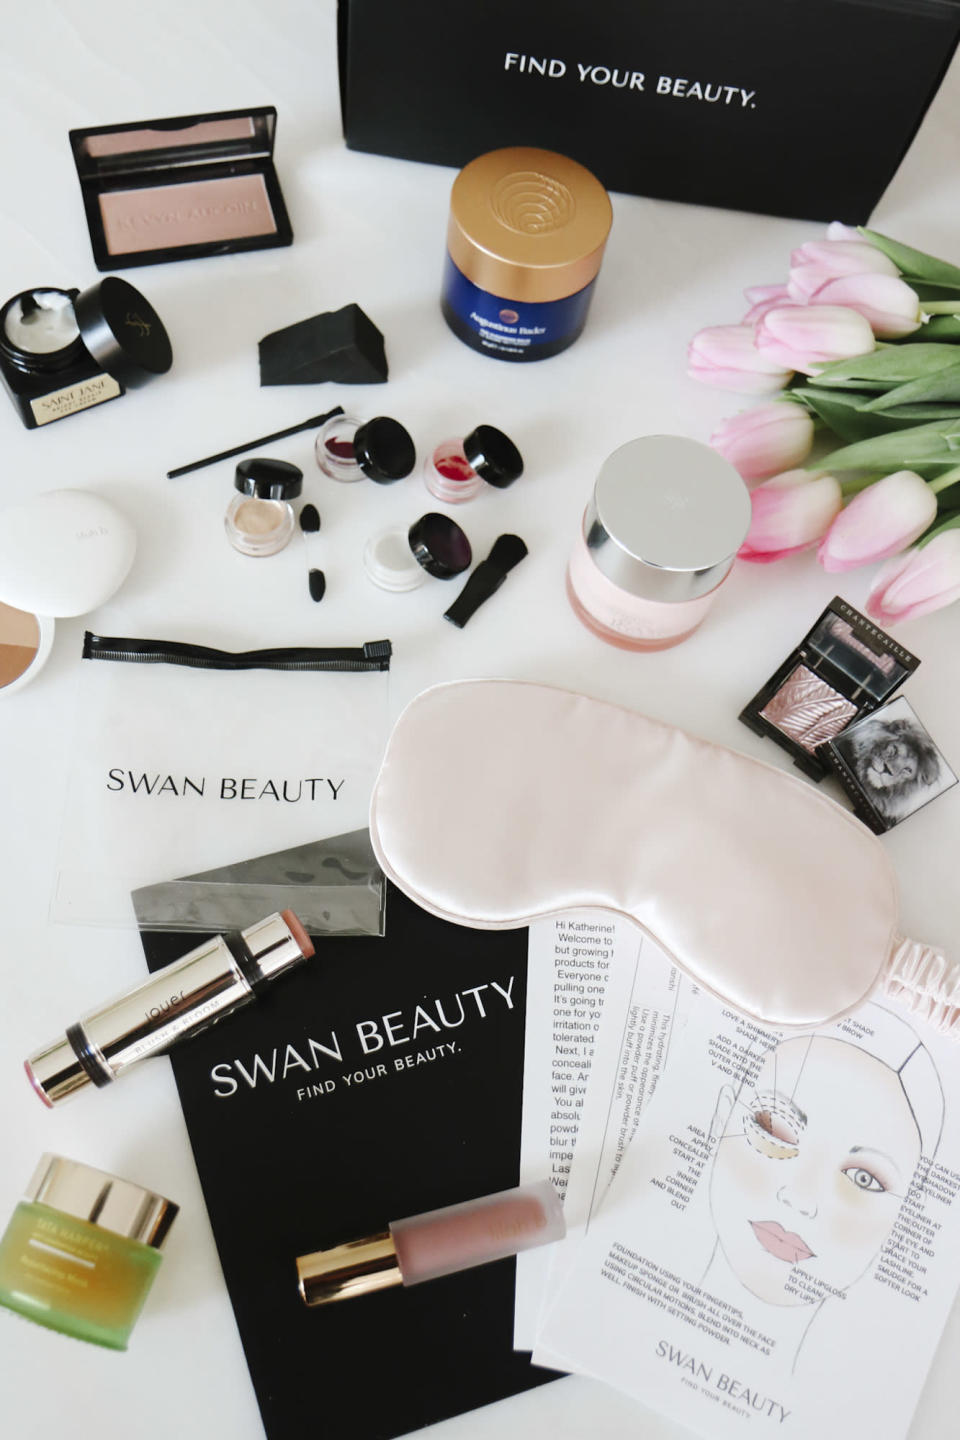 """<p>If you are looking for the ultimate in thoughtful, luxurious, personalized Mother's Day gifts, we've found a winner. Let Swan Beauty's experts devise the <a href=""""https://swanbeauty.com/"""" rel=""""nofollow noopener"""" target=""""_blank"""" data-ylk=""""slk:perfect beauty routine"""" class=""""link rapid-noclick-resp"""">perfect beauty routine</a> for mom (or any of the special women in your life) based on her budget, skin type, and preferred brands. Best of all: She can test out her box of curated products before you buy.</p> <p><strong>$75-$660, <a href=""""https://swanbeauty.com/"""" rel=""""nofollow noopener"""" target=""""_blank"""" data-ylk=""""slk:swanbeauty.com"""" class=""""link rapid-noclick-resp"""">swanbeauty.com</a></strong></p> <p><strong>*Use discount code SWANLOVESMOMS to receive a</strong><strong> Free Silk Eye Mask + 15% </strong></p>"""